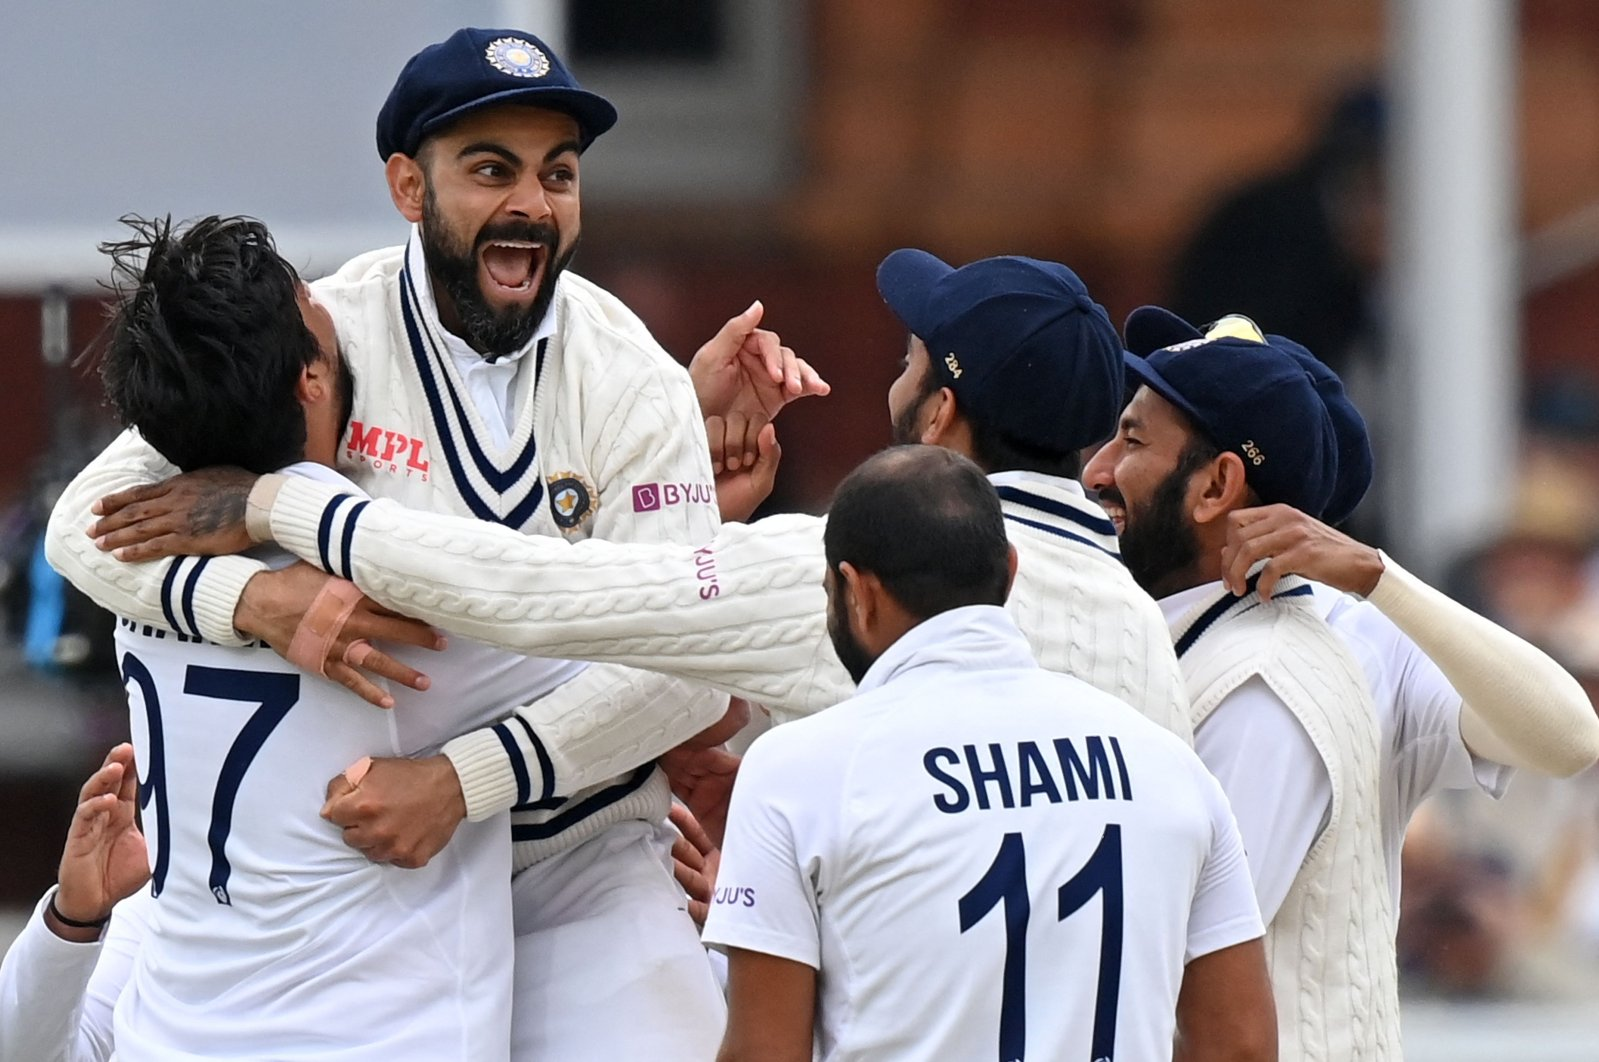 India's captain Virat Kohli (2nd L) celebrates teammates after a successful appeal for the wicket of England's Jonny Bairstow on Day 5 of the second Test at Lord's cricket ground, London, England, Aug. 16, 2021. (AFP Photo)